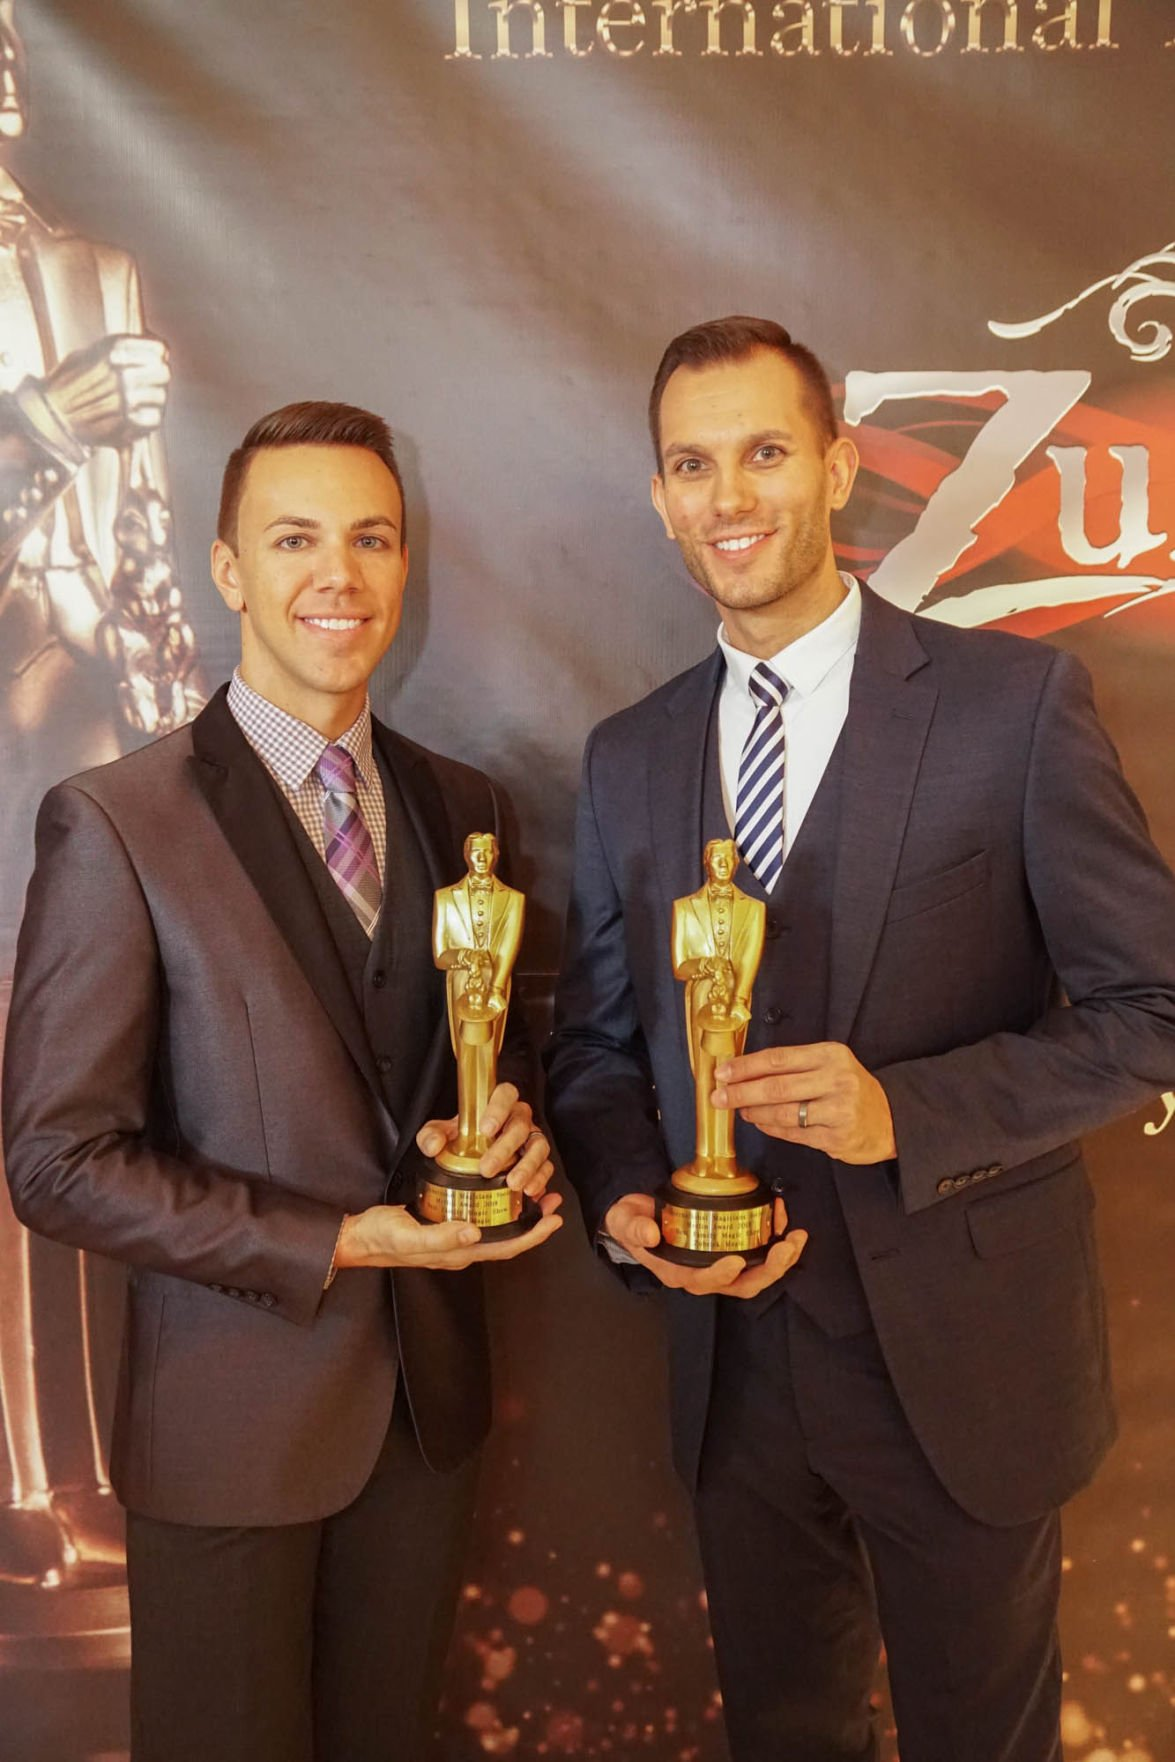 'Zubrick' show wins 'Oscar of Magic'